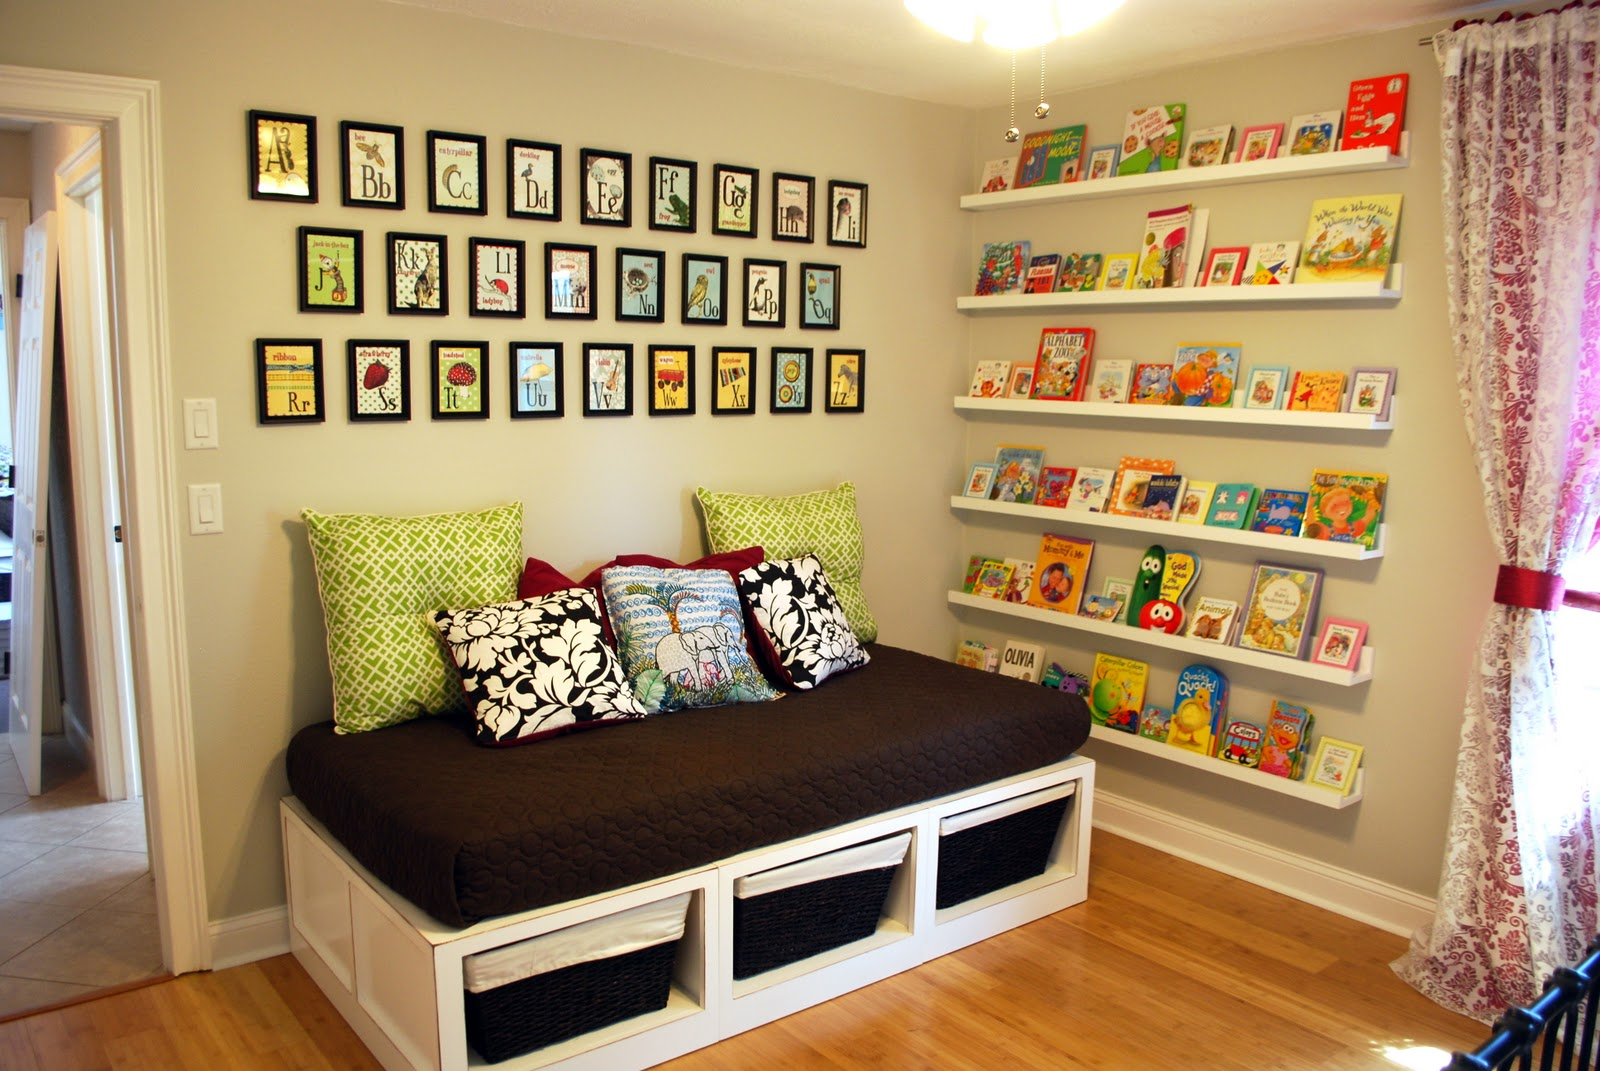 Nursery Room Book Shelves From 10 Ledge Plan